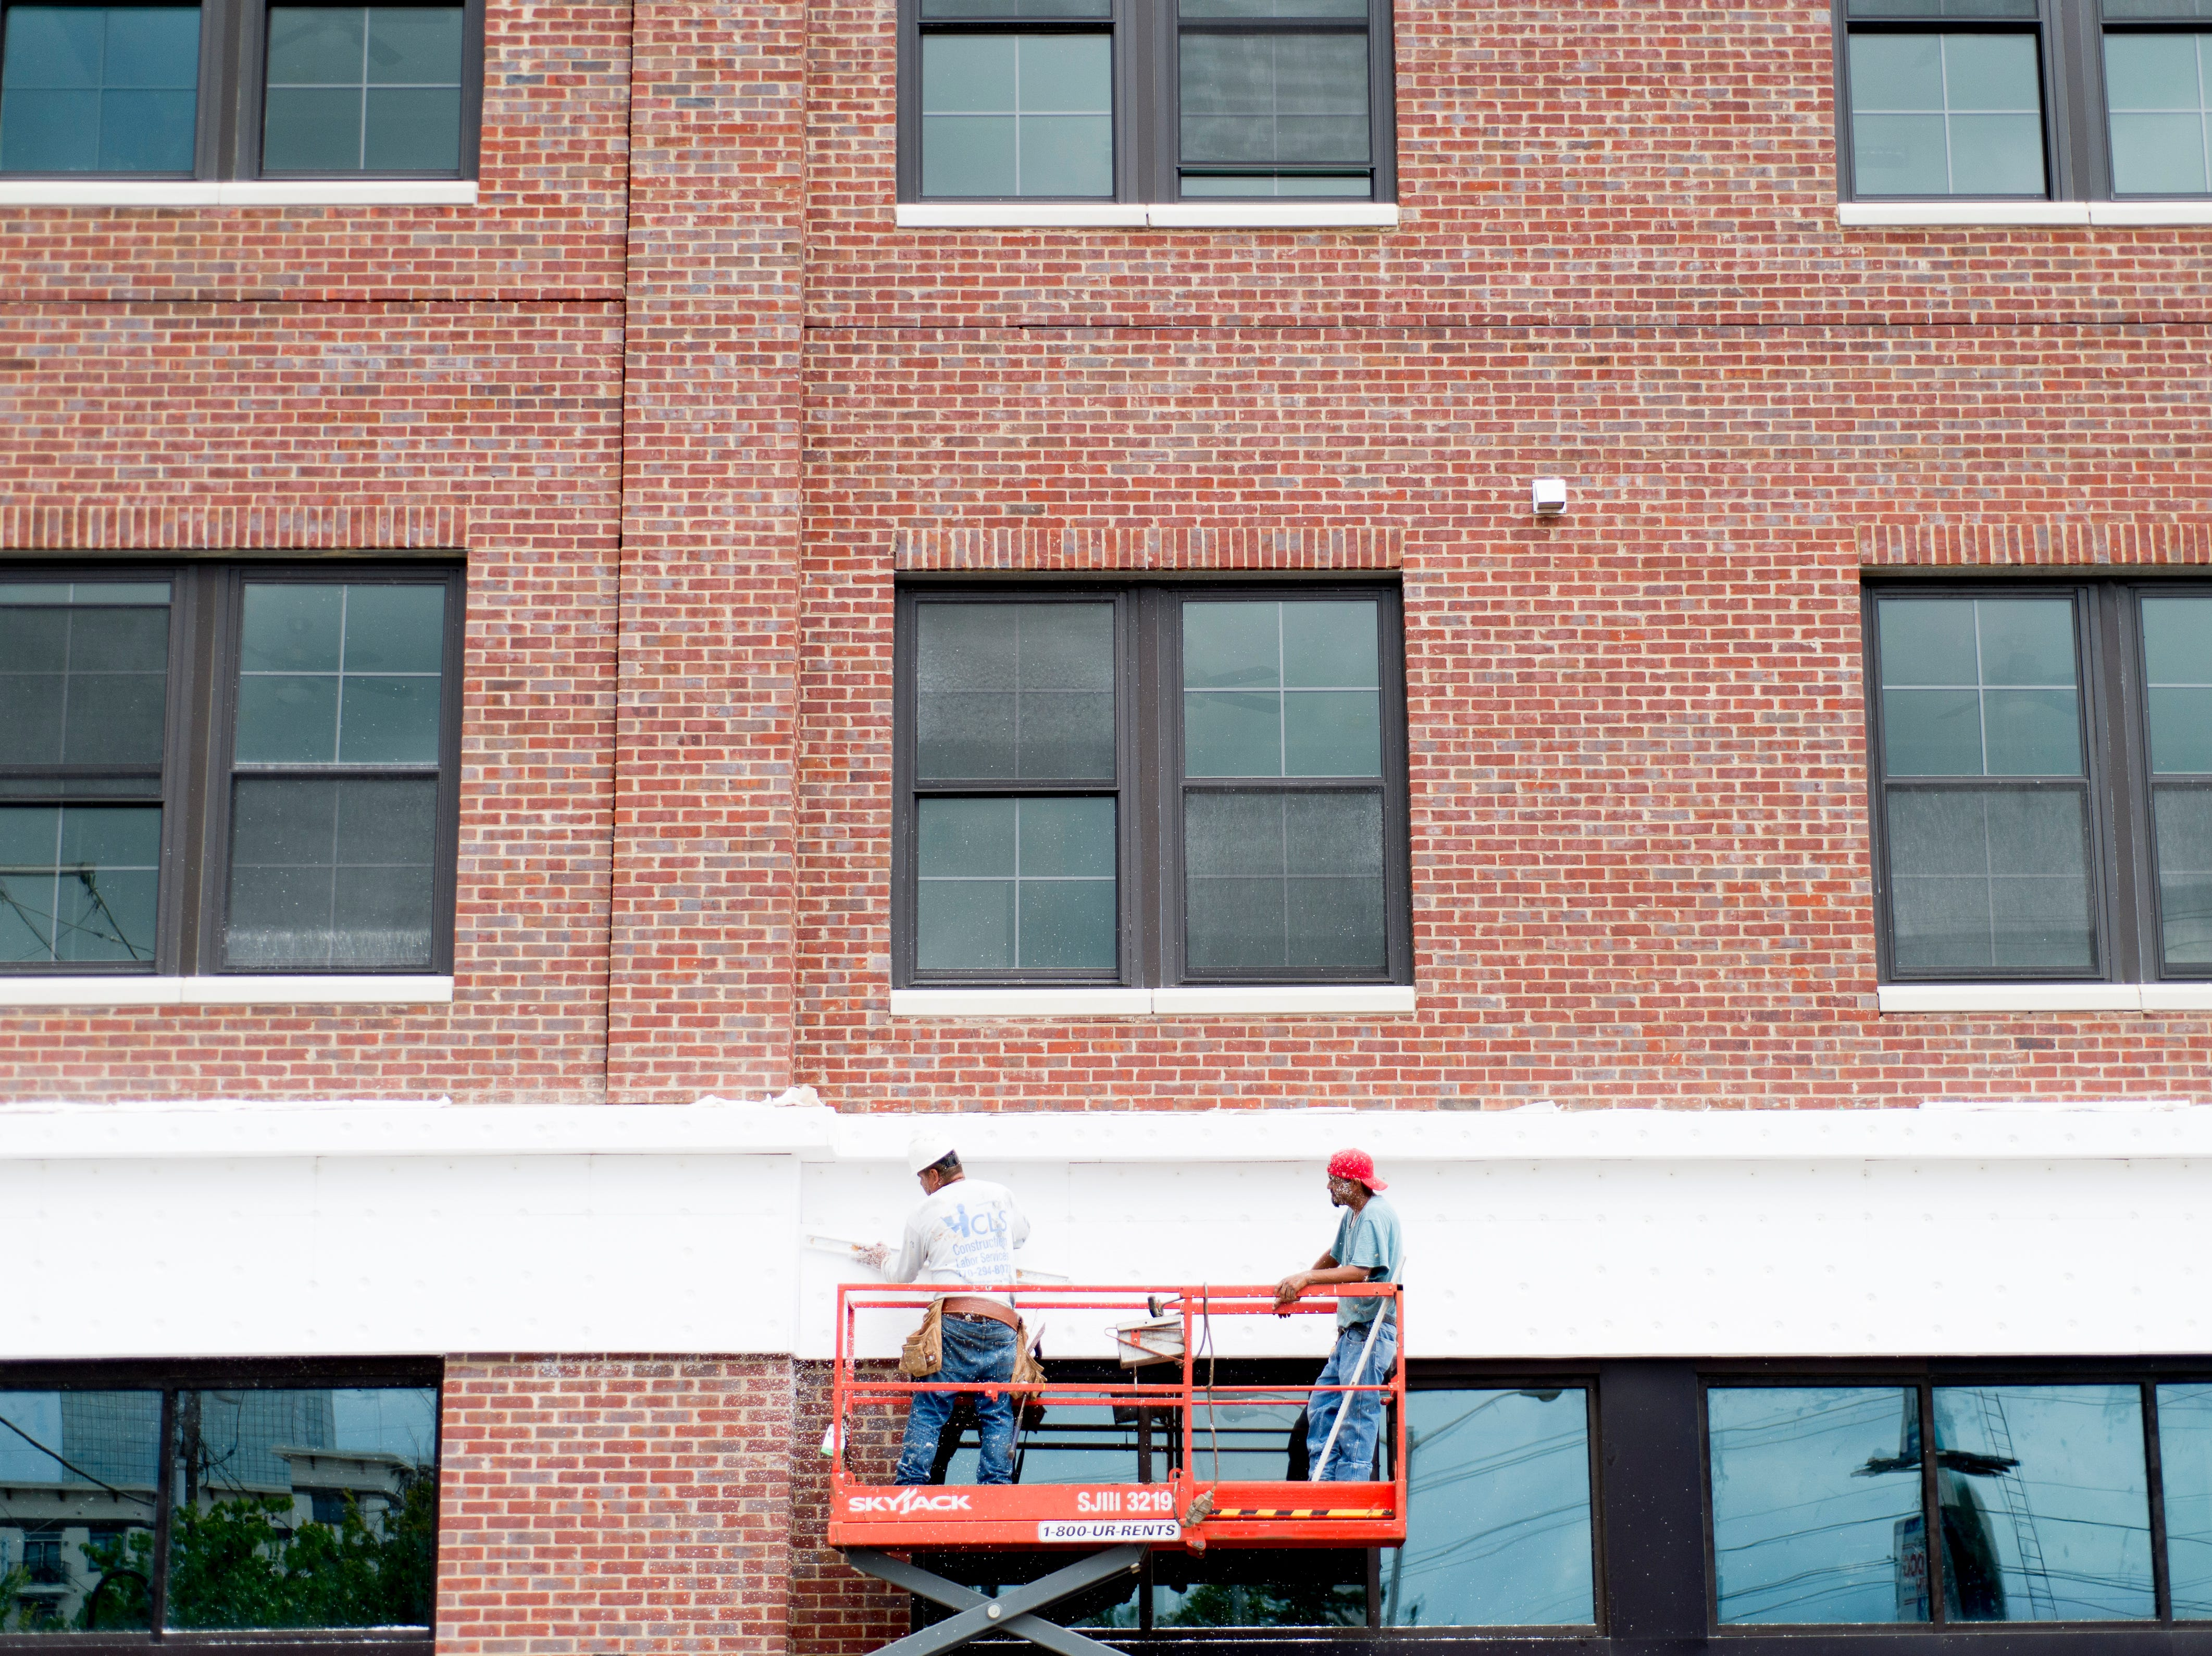 Workers construct the exterior of The Crozier in Old City in downtown Knoxville, Tennessee on Saturday, August 18, 2018.